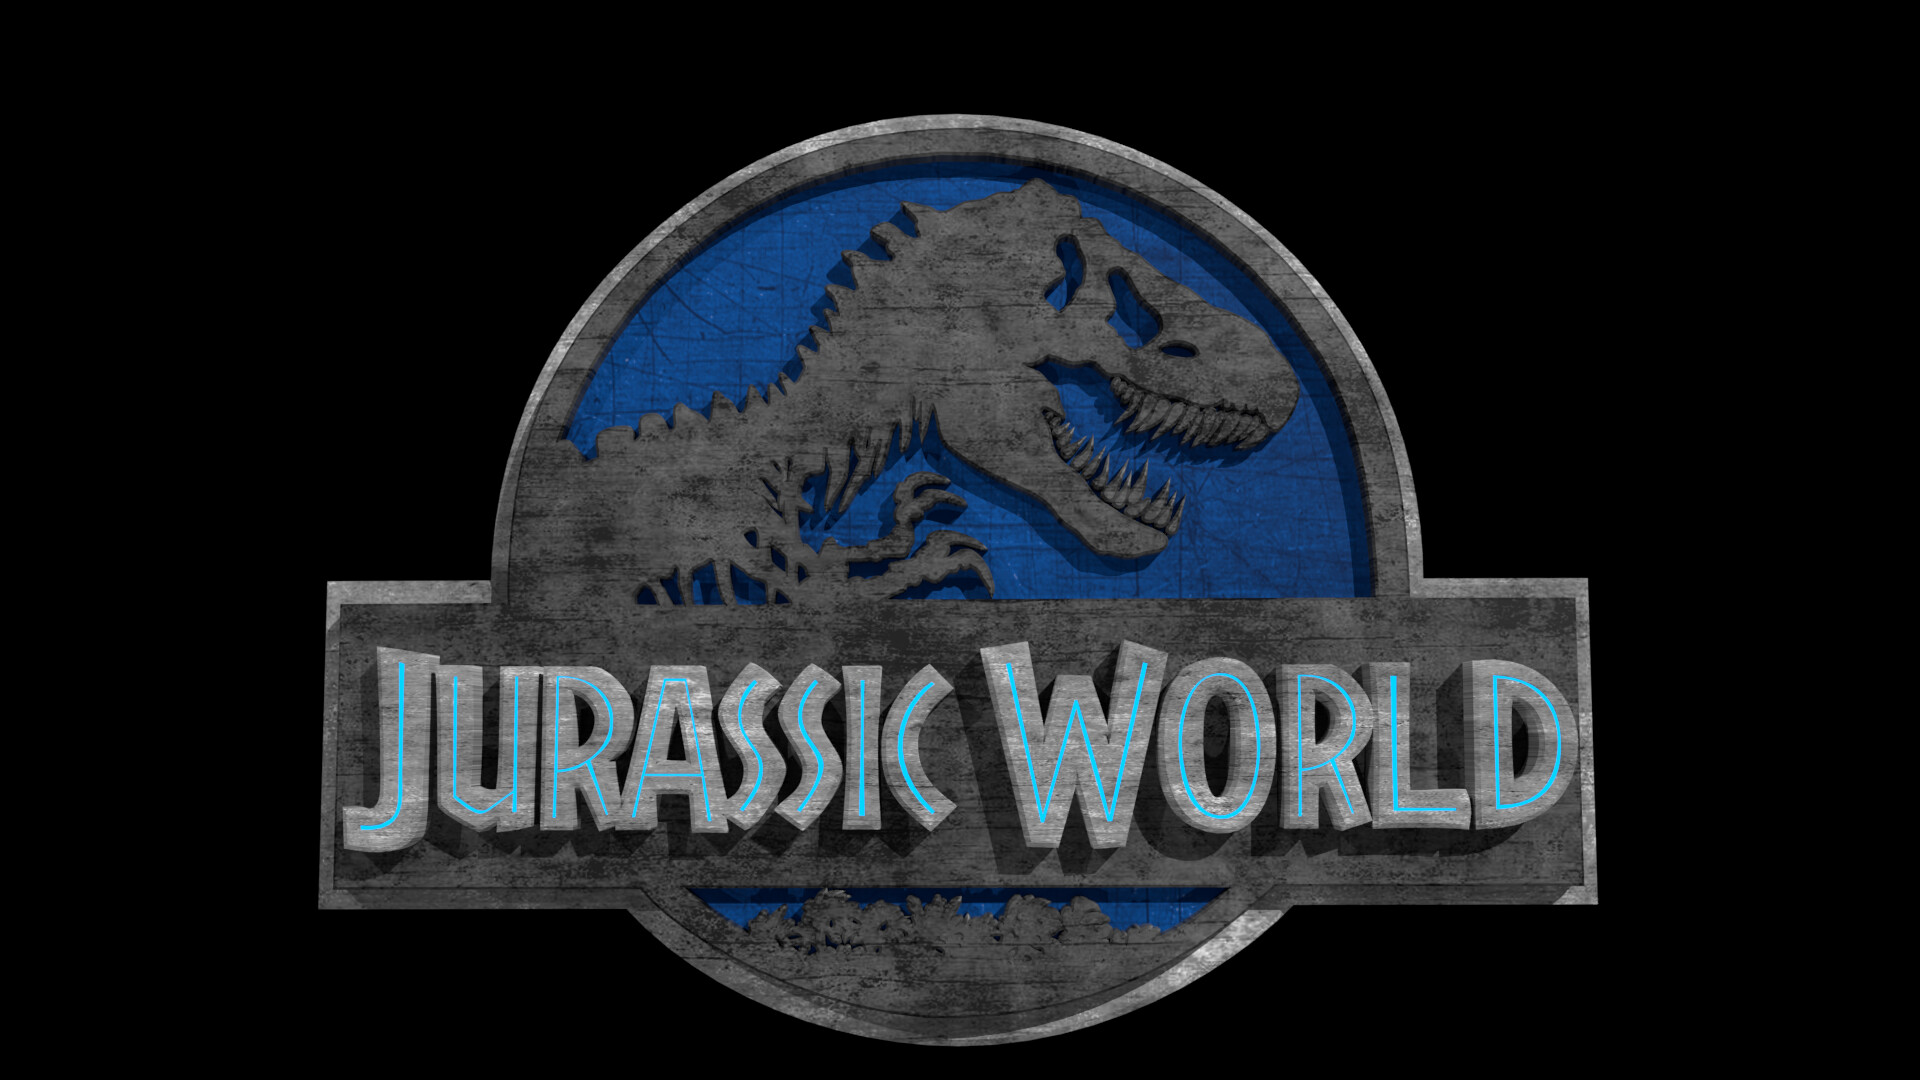 Grzegorz Babiuch Jurassic World Logo Here you can explore hq jurassic world logo transparent illustrations, icons and clipart with filter setting like size, type, color etc. grzegorz babiuch jurassic world logo